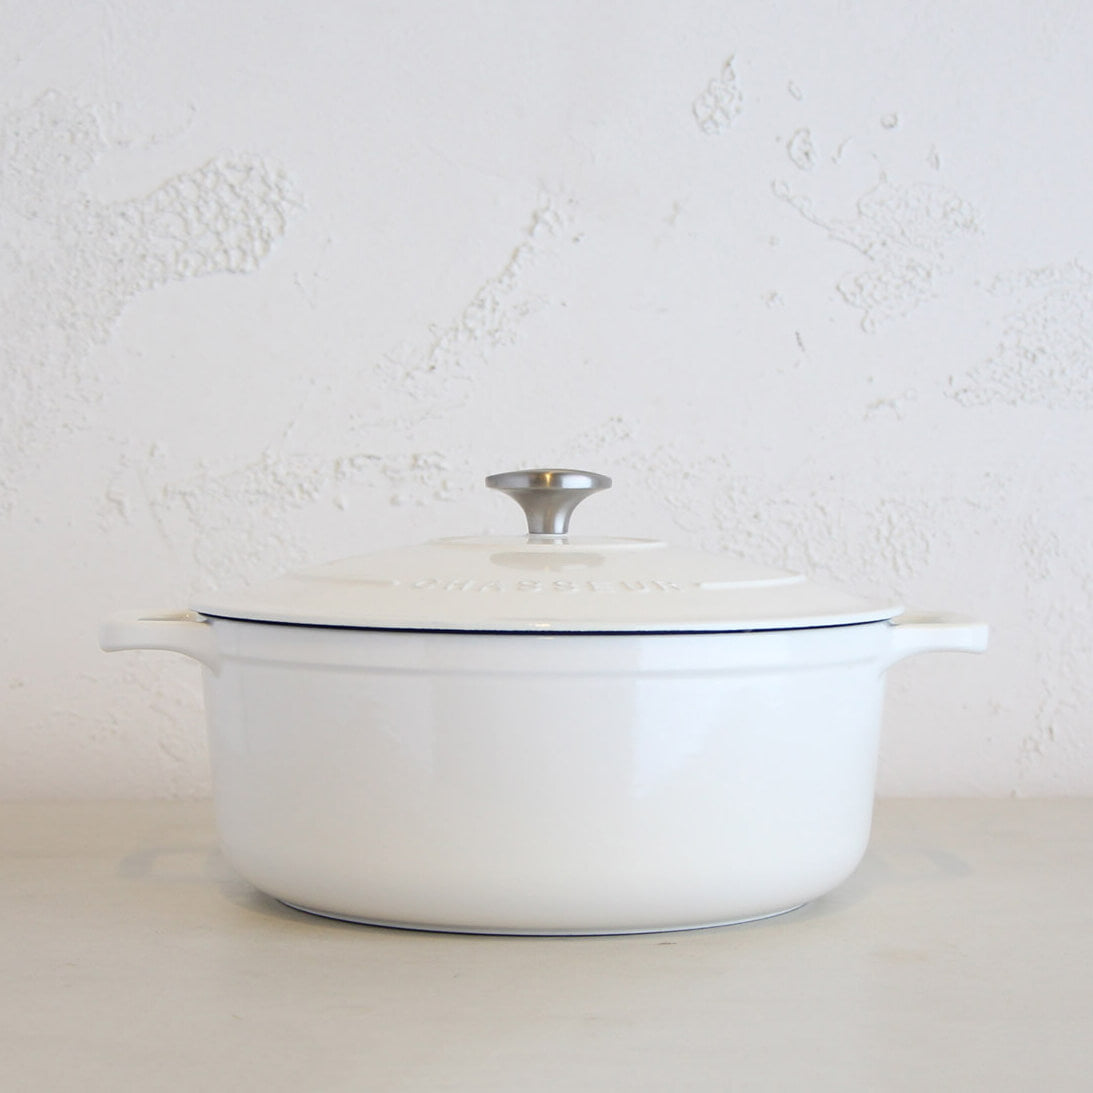 CHASSEUR  |  ROUND FRENCH OVEN  |  WHITE  |   FRENCH ENAMEL COOKWARE